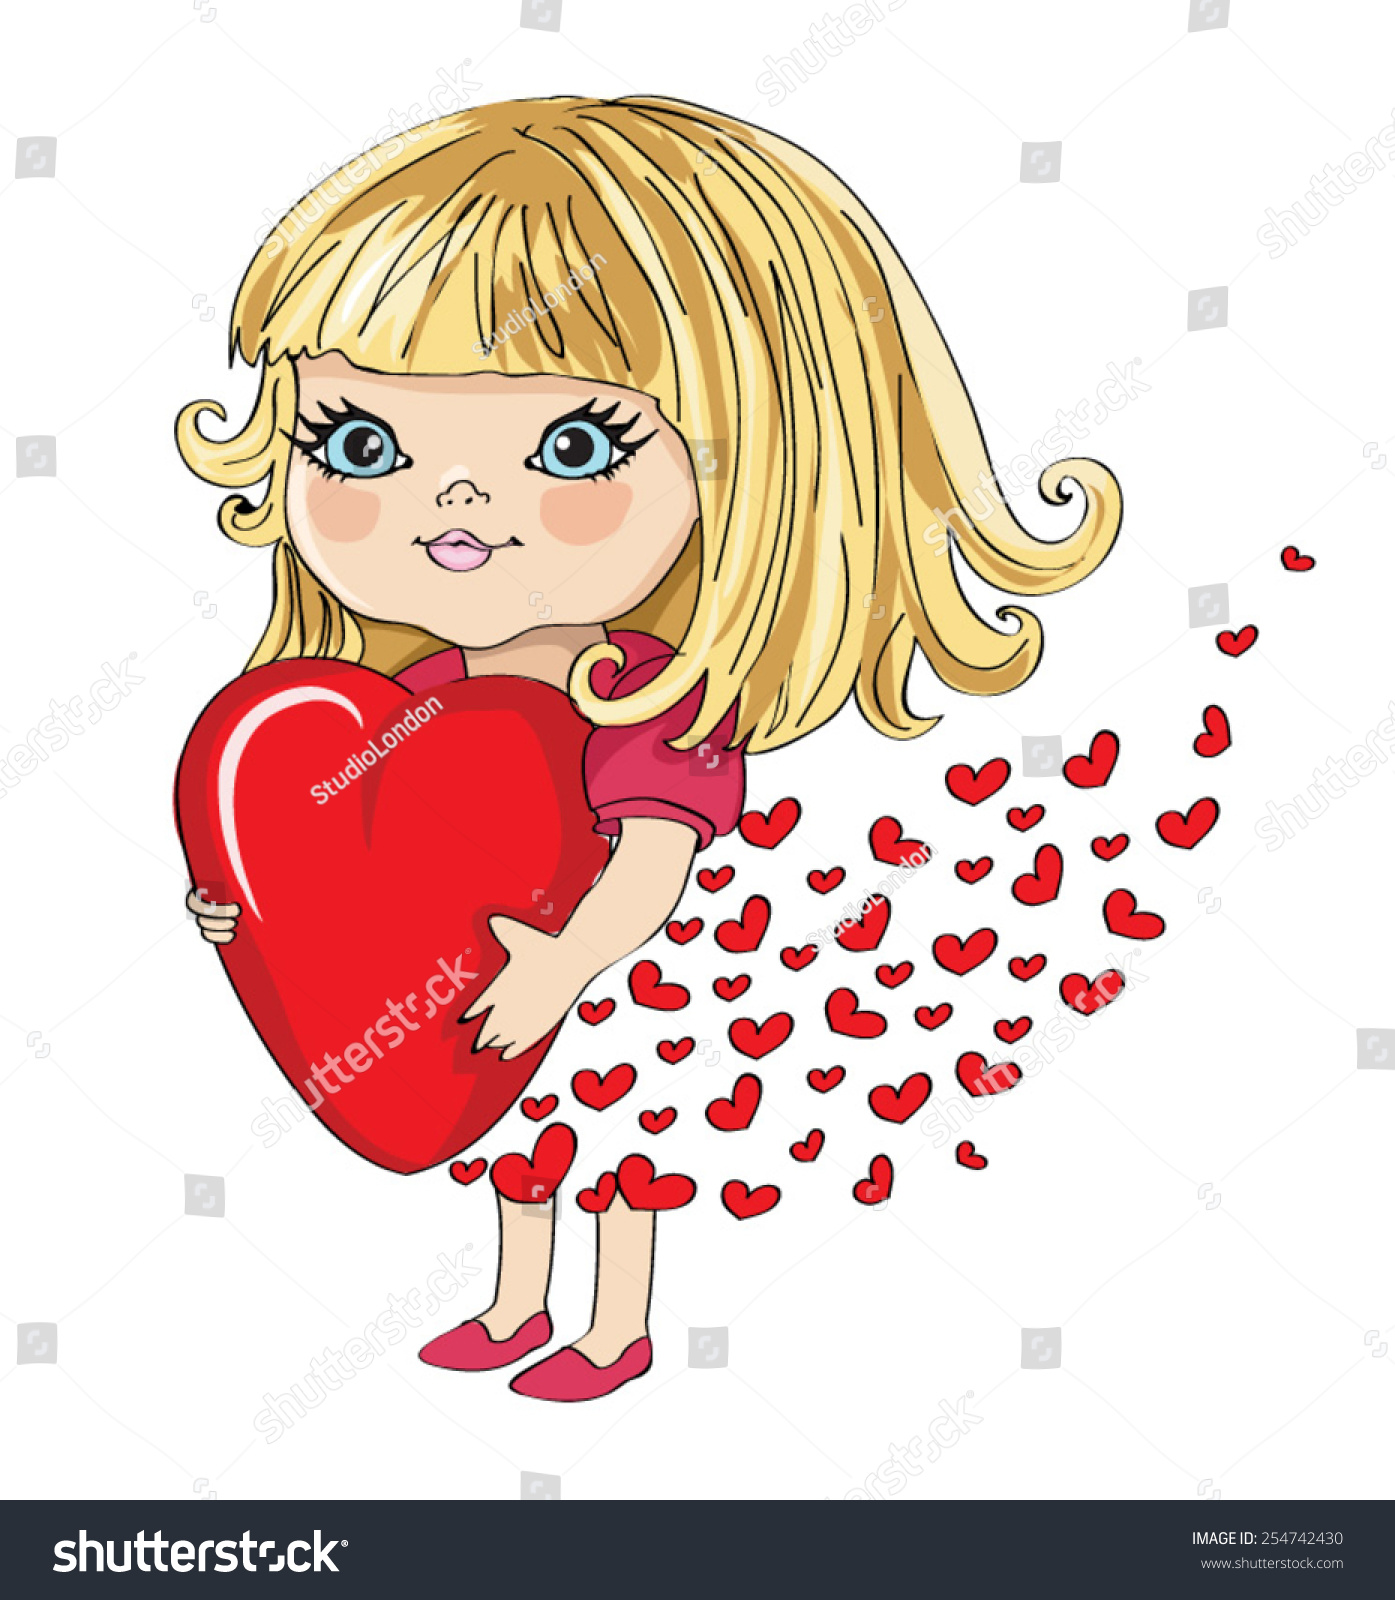 Cute Girlvalentines Day Special Greeting Cardtshirt Vector – Valentine Day Special Greeting Cards